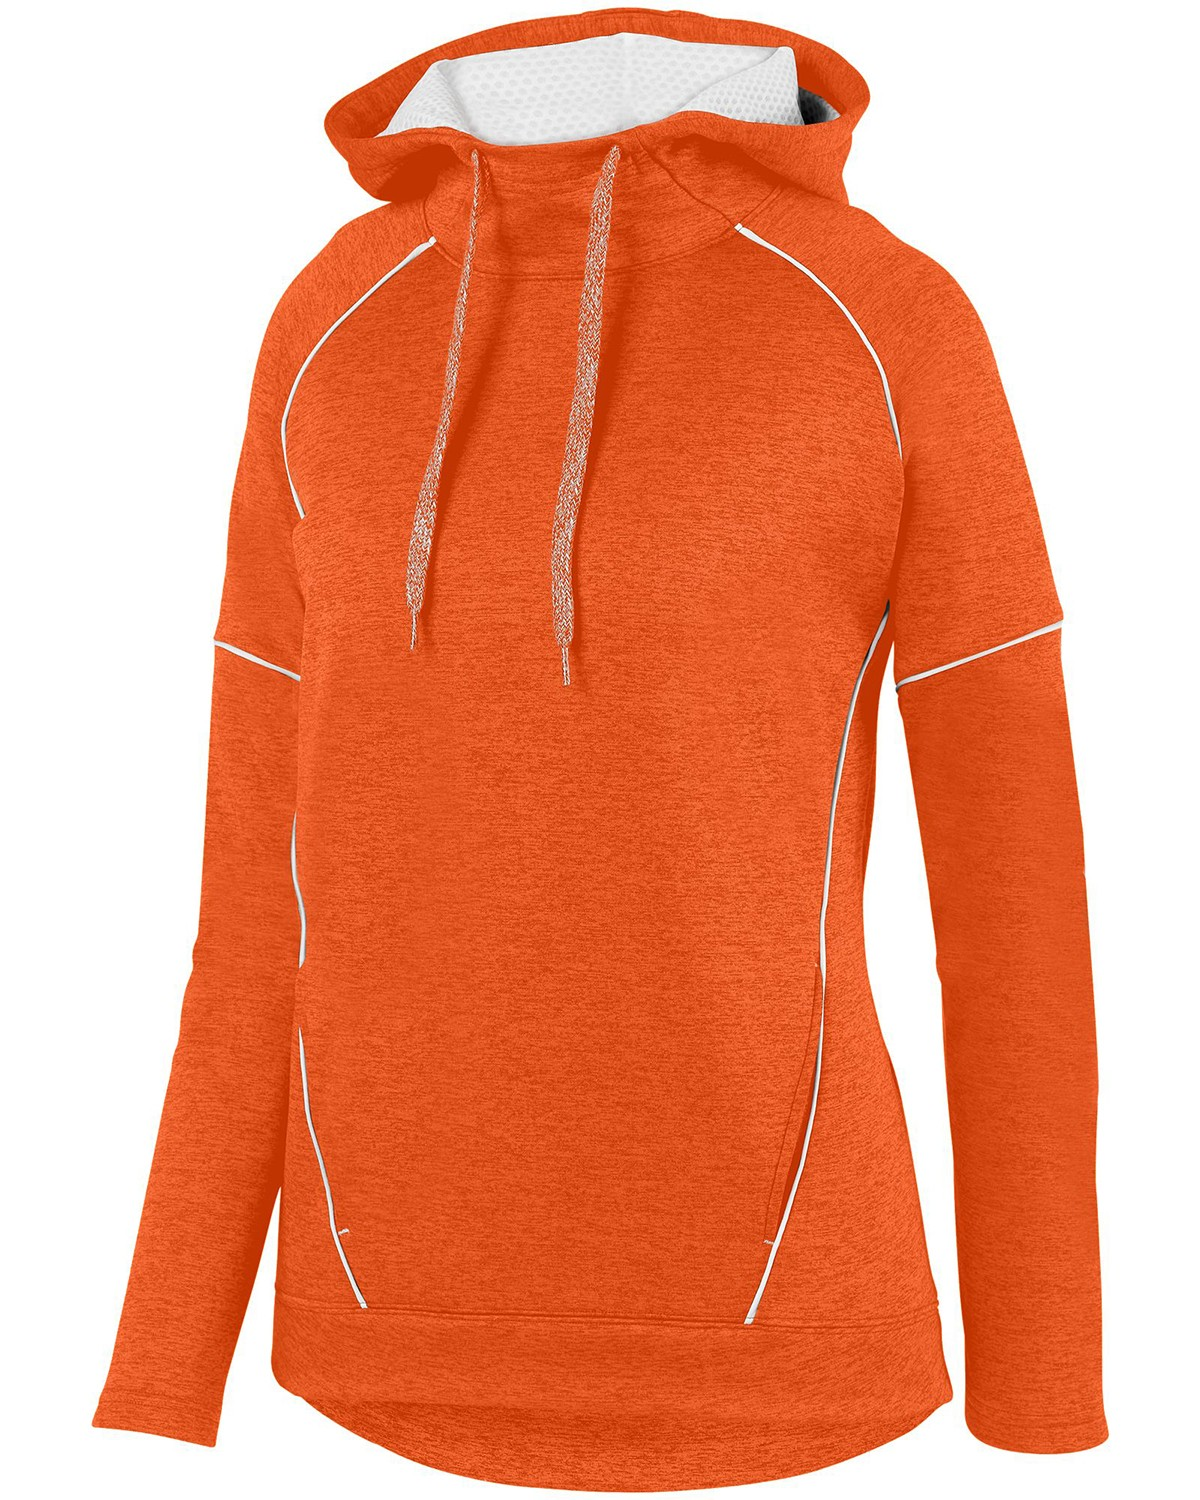 5556 Augusta Sportswear ORANGE/ WHITE